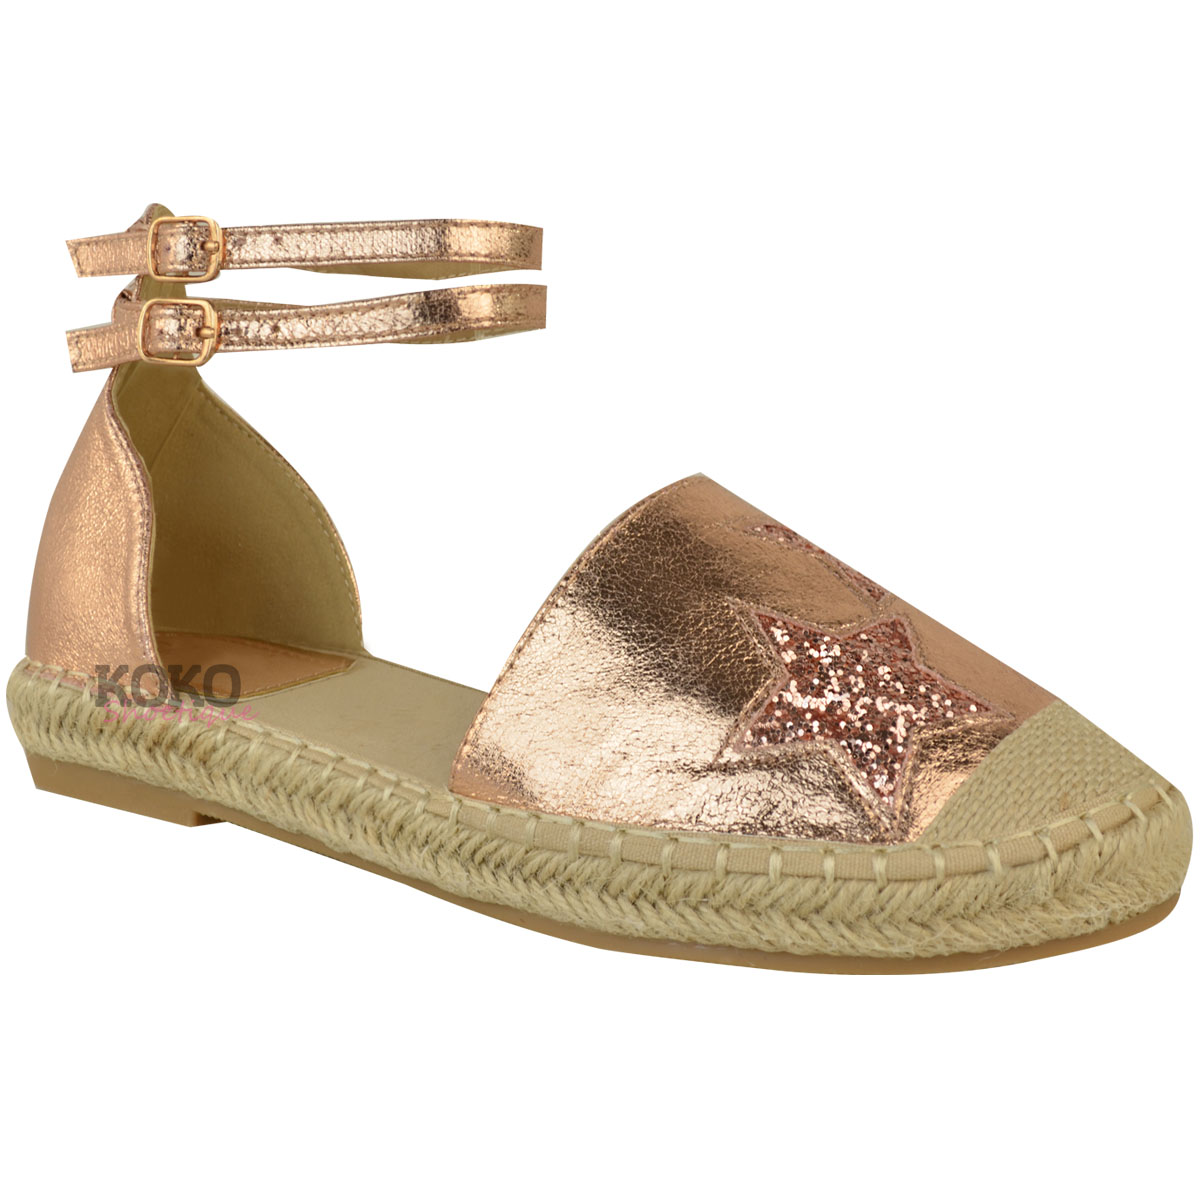 Free shipping BOTH ways on womens gold flat shoes, from our vast selection of styles. Fast delivery, and 24/7/ real-person service with a smile. Click or call